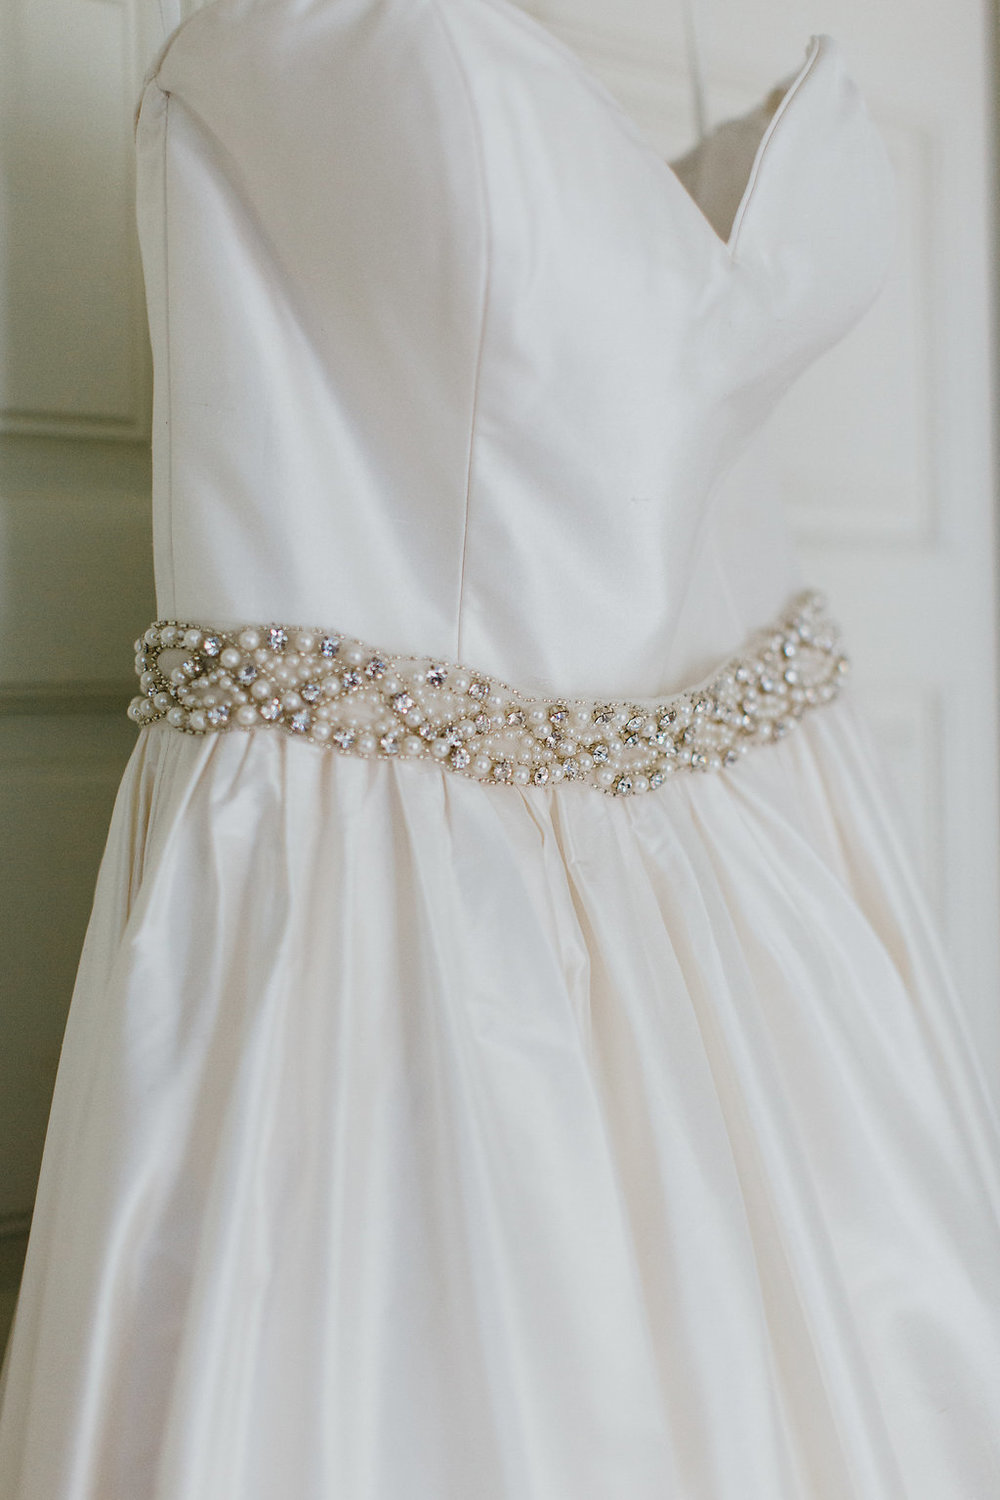 Wedding ballgown crystal belt